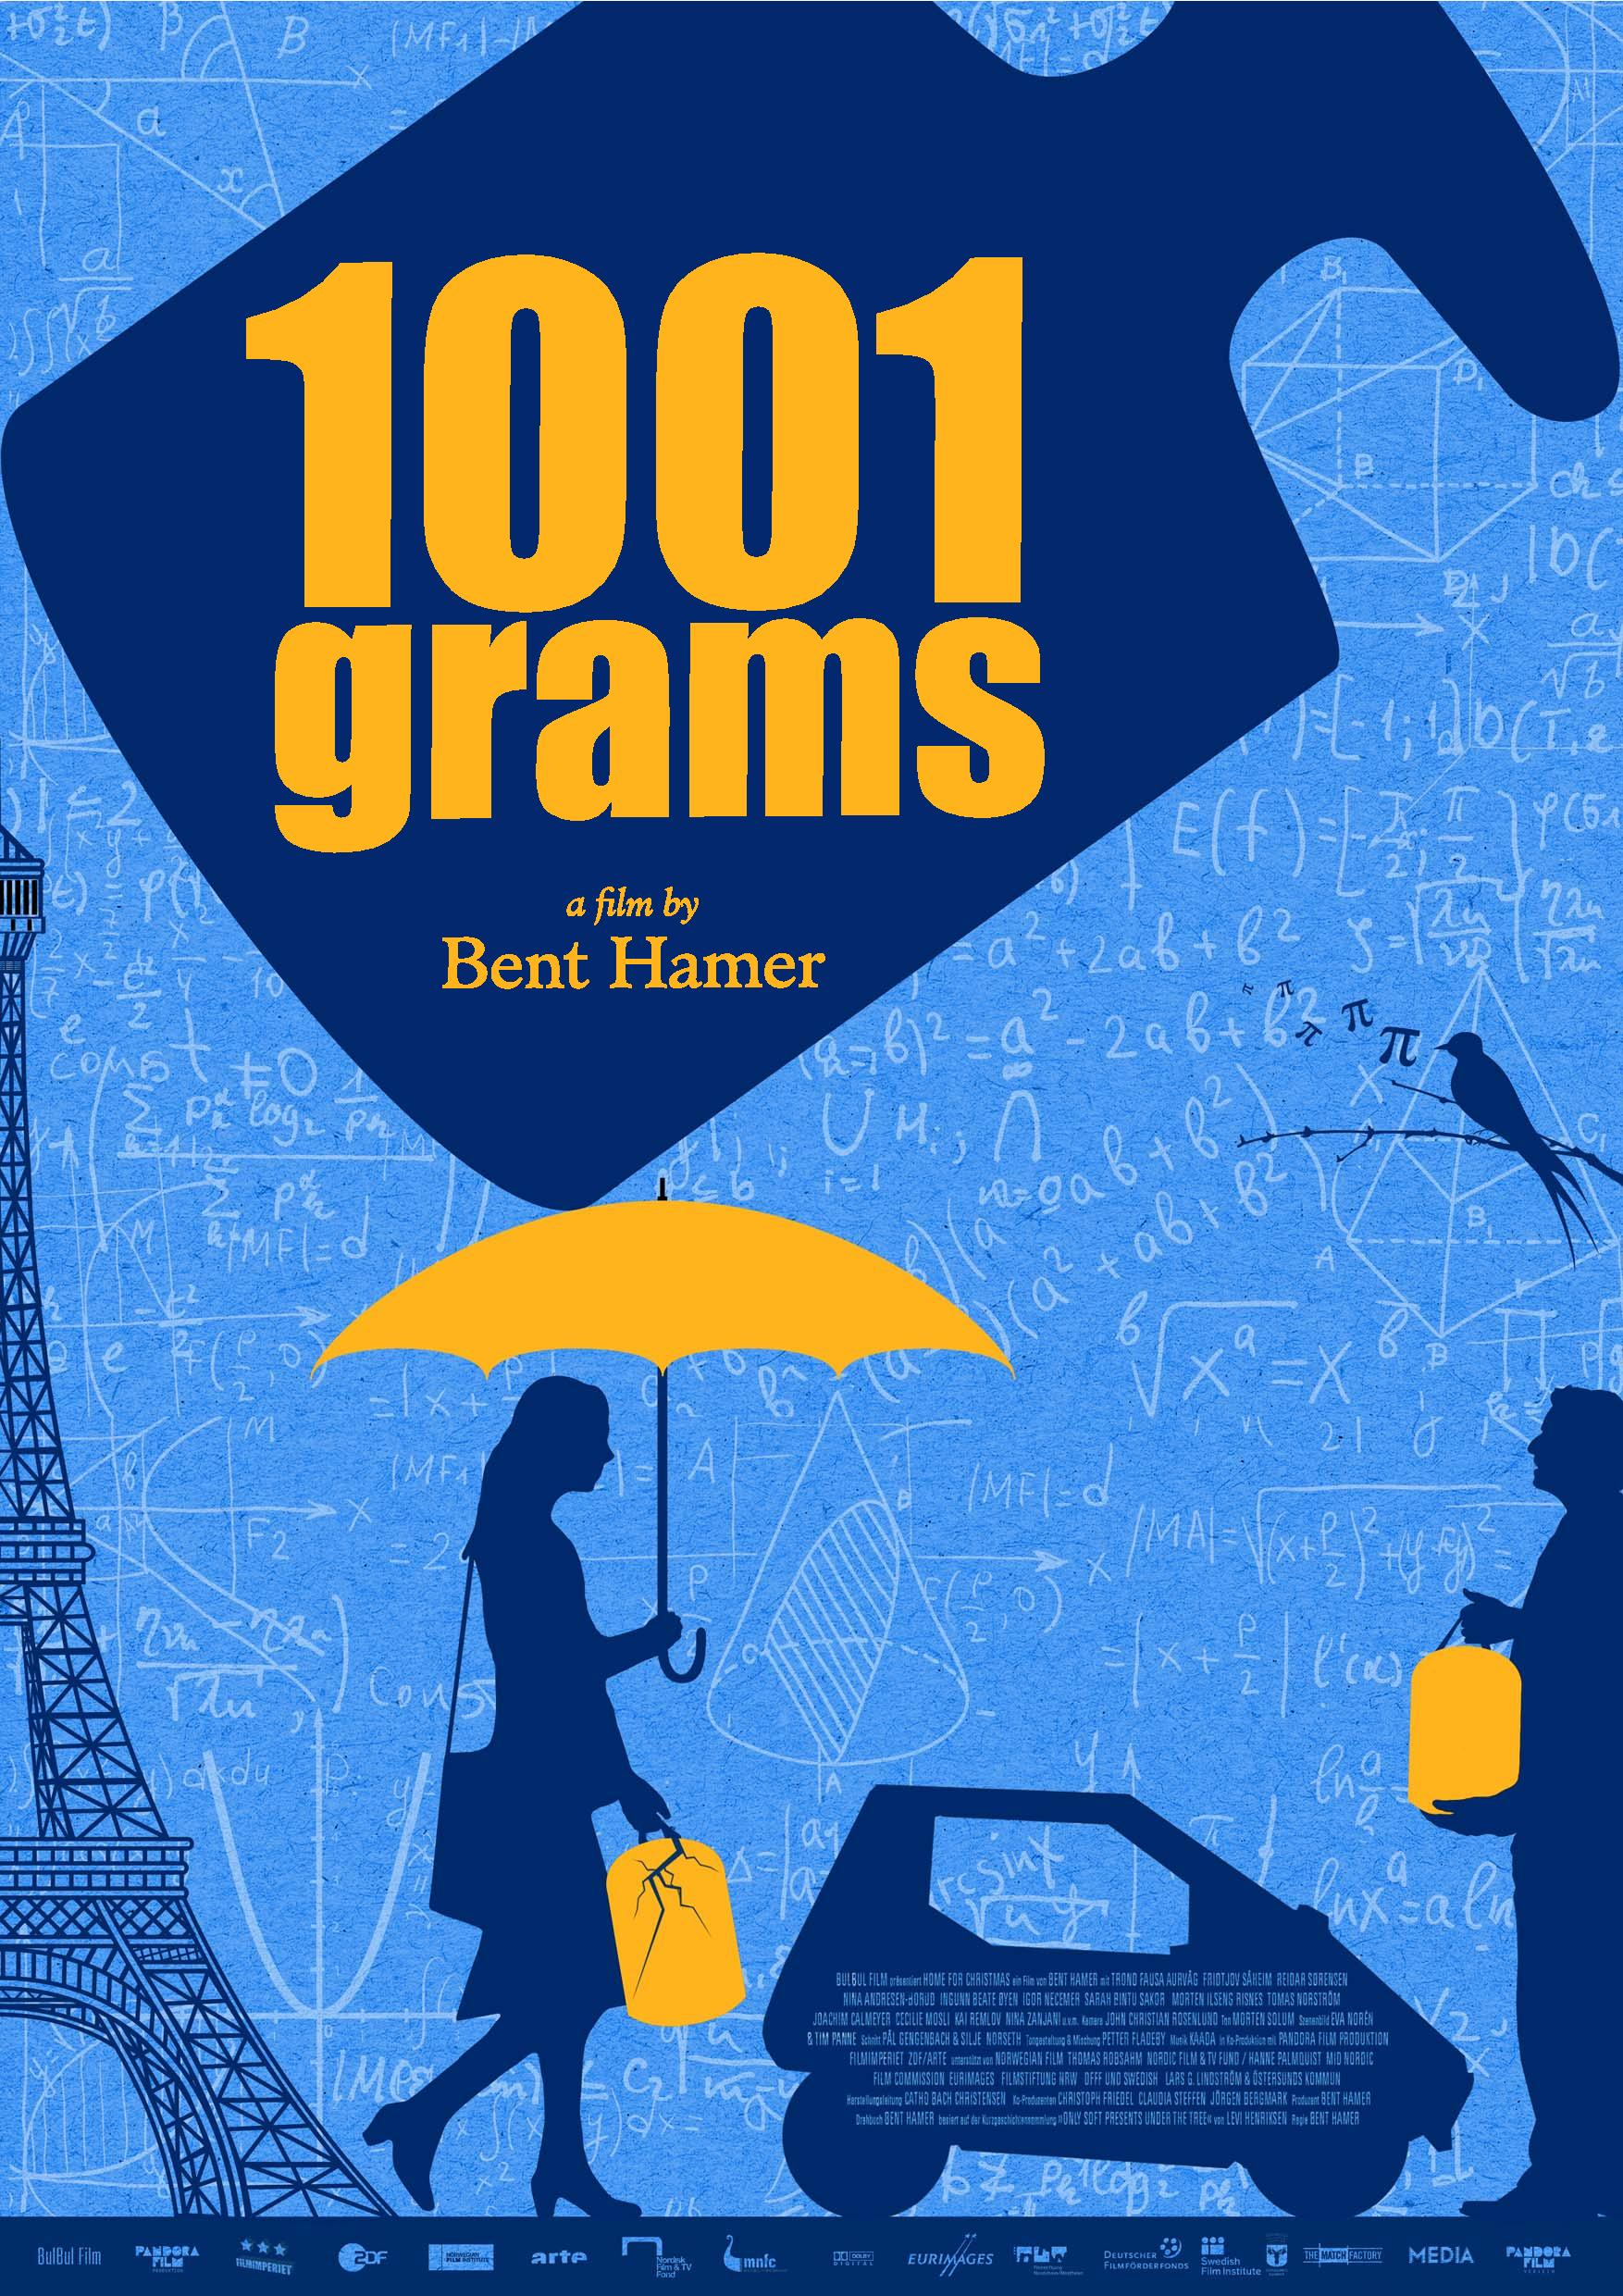 1001_Grams_Poster-page-001.jpg